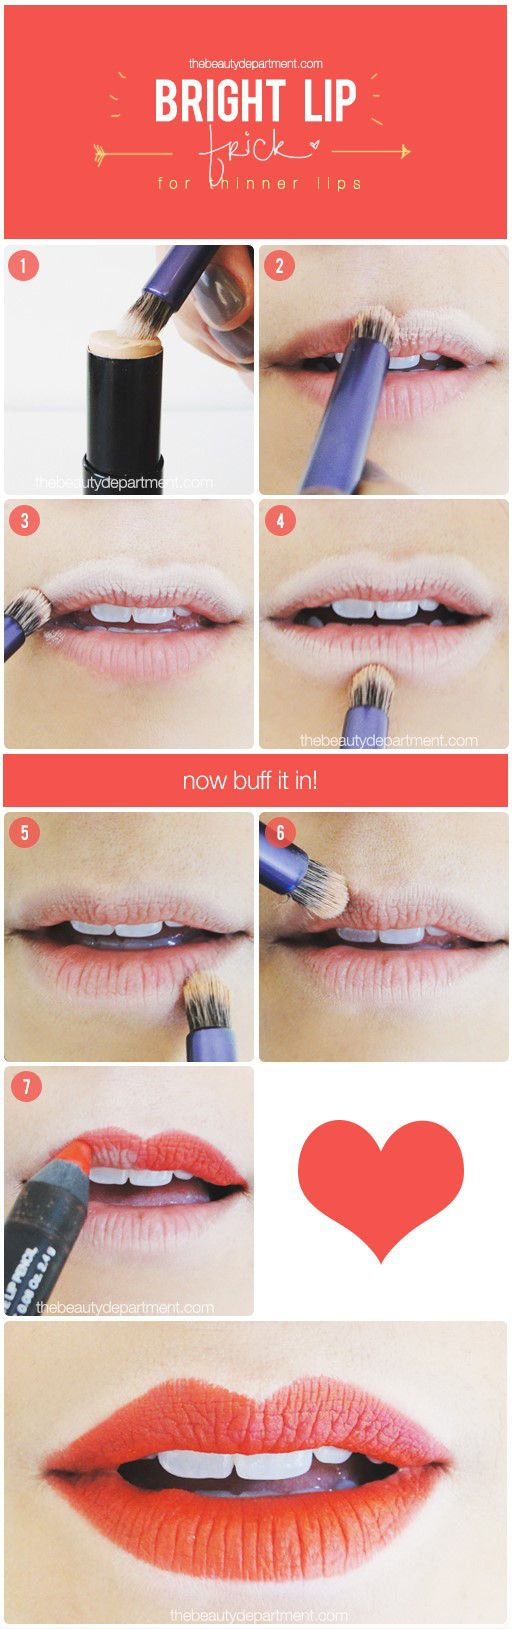 HOW TO WEAR BRIGHT LIPSTICK ON THINNER LIPS  Lipstick tutorial